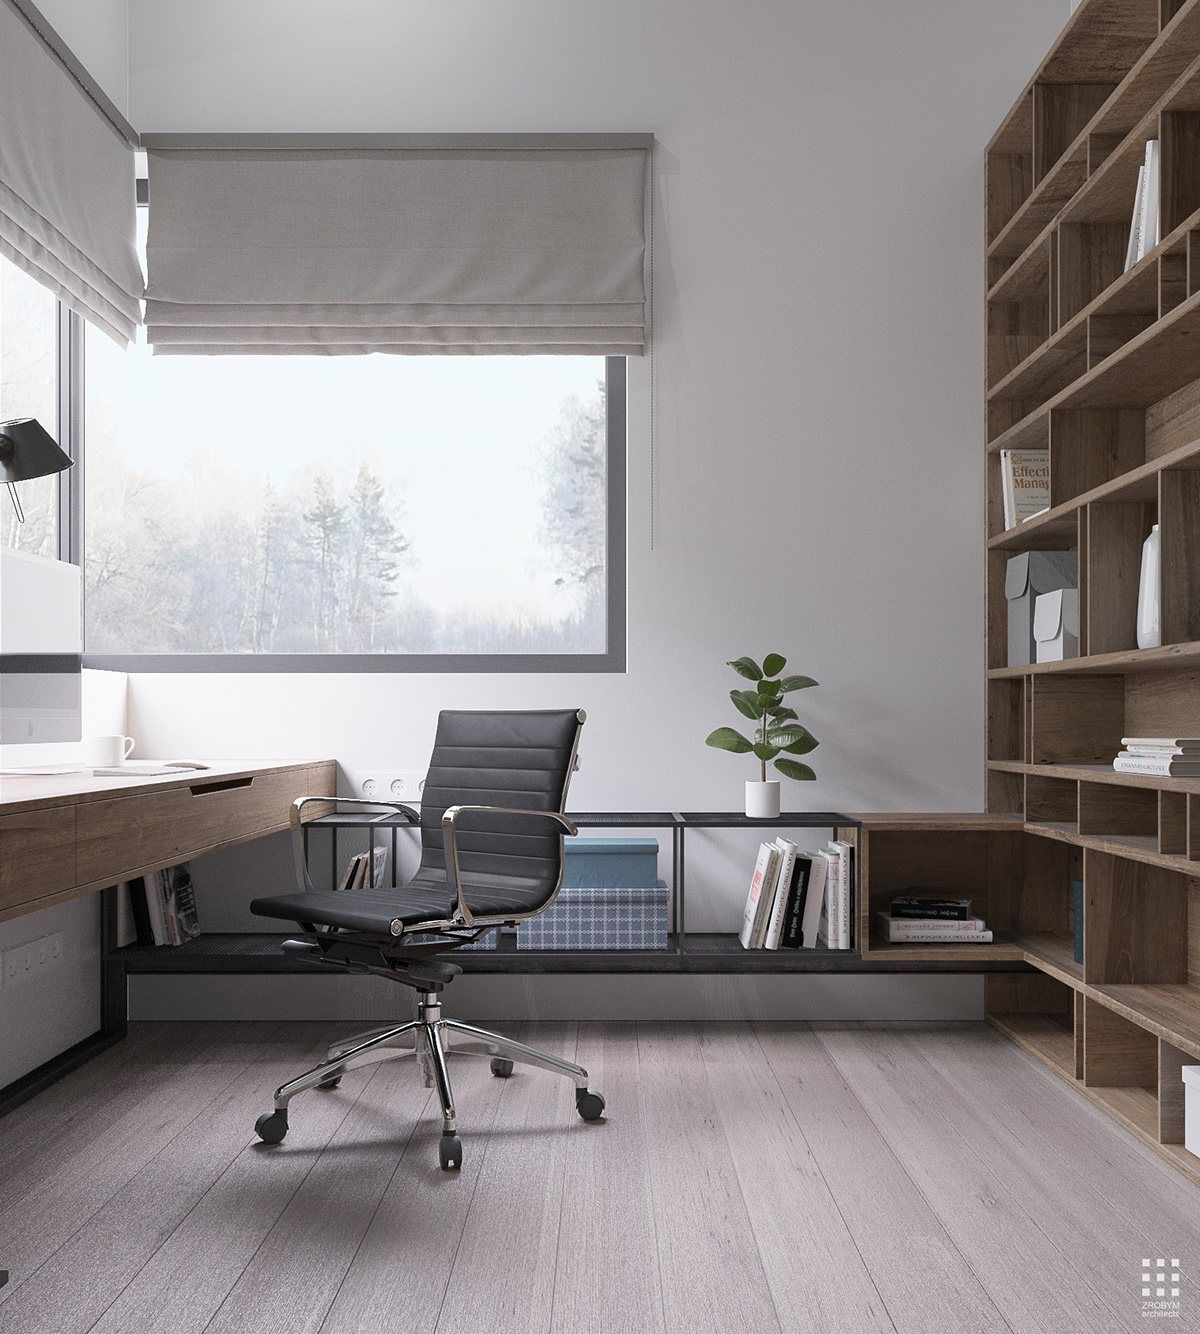 35 Modern Home Office Design Ideas: An Organic Modern Home With Subtle Industrial Undertones